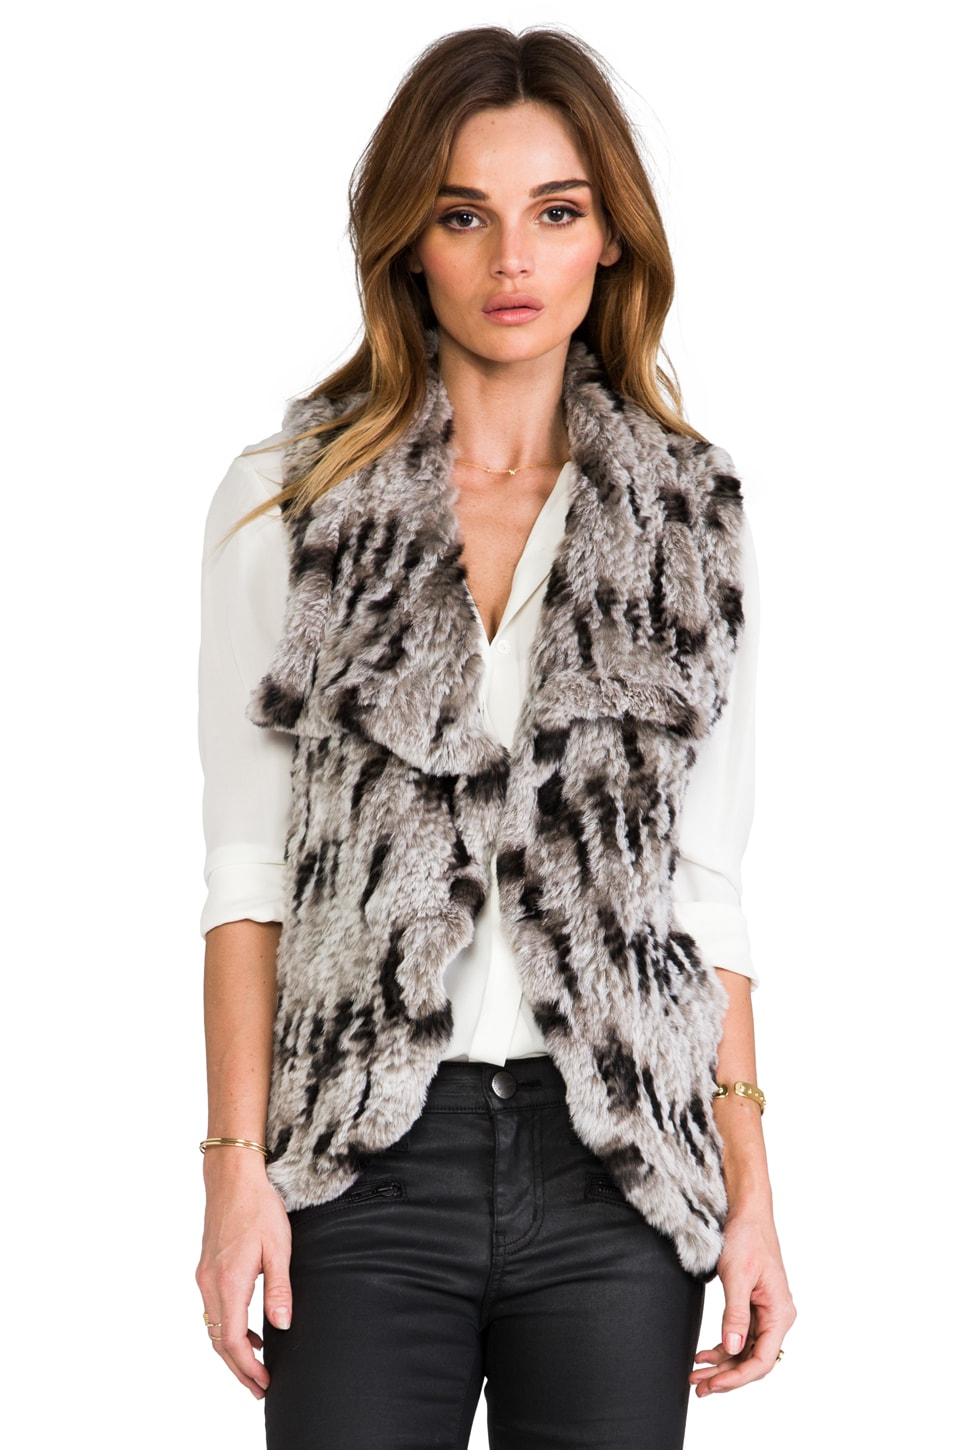 Alice + Olivia Celine Fur Vest in Black/Grey/White